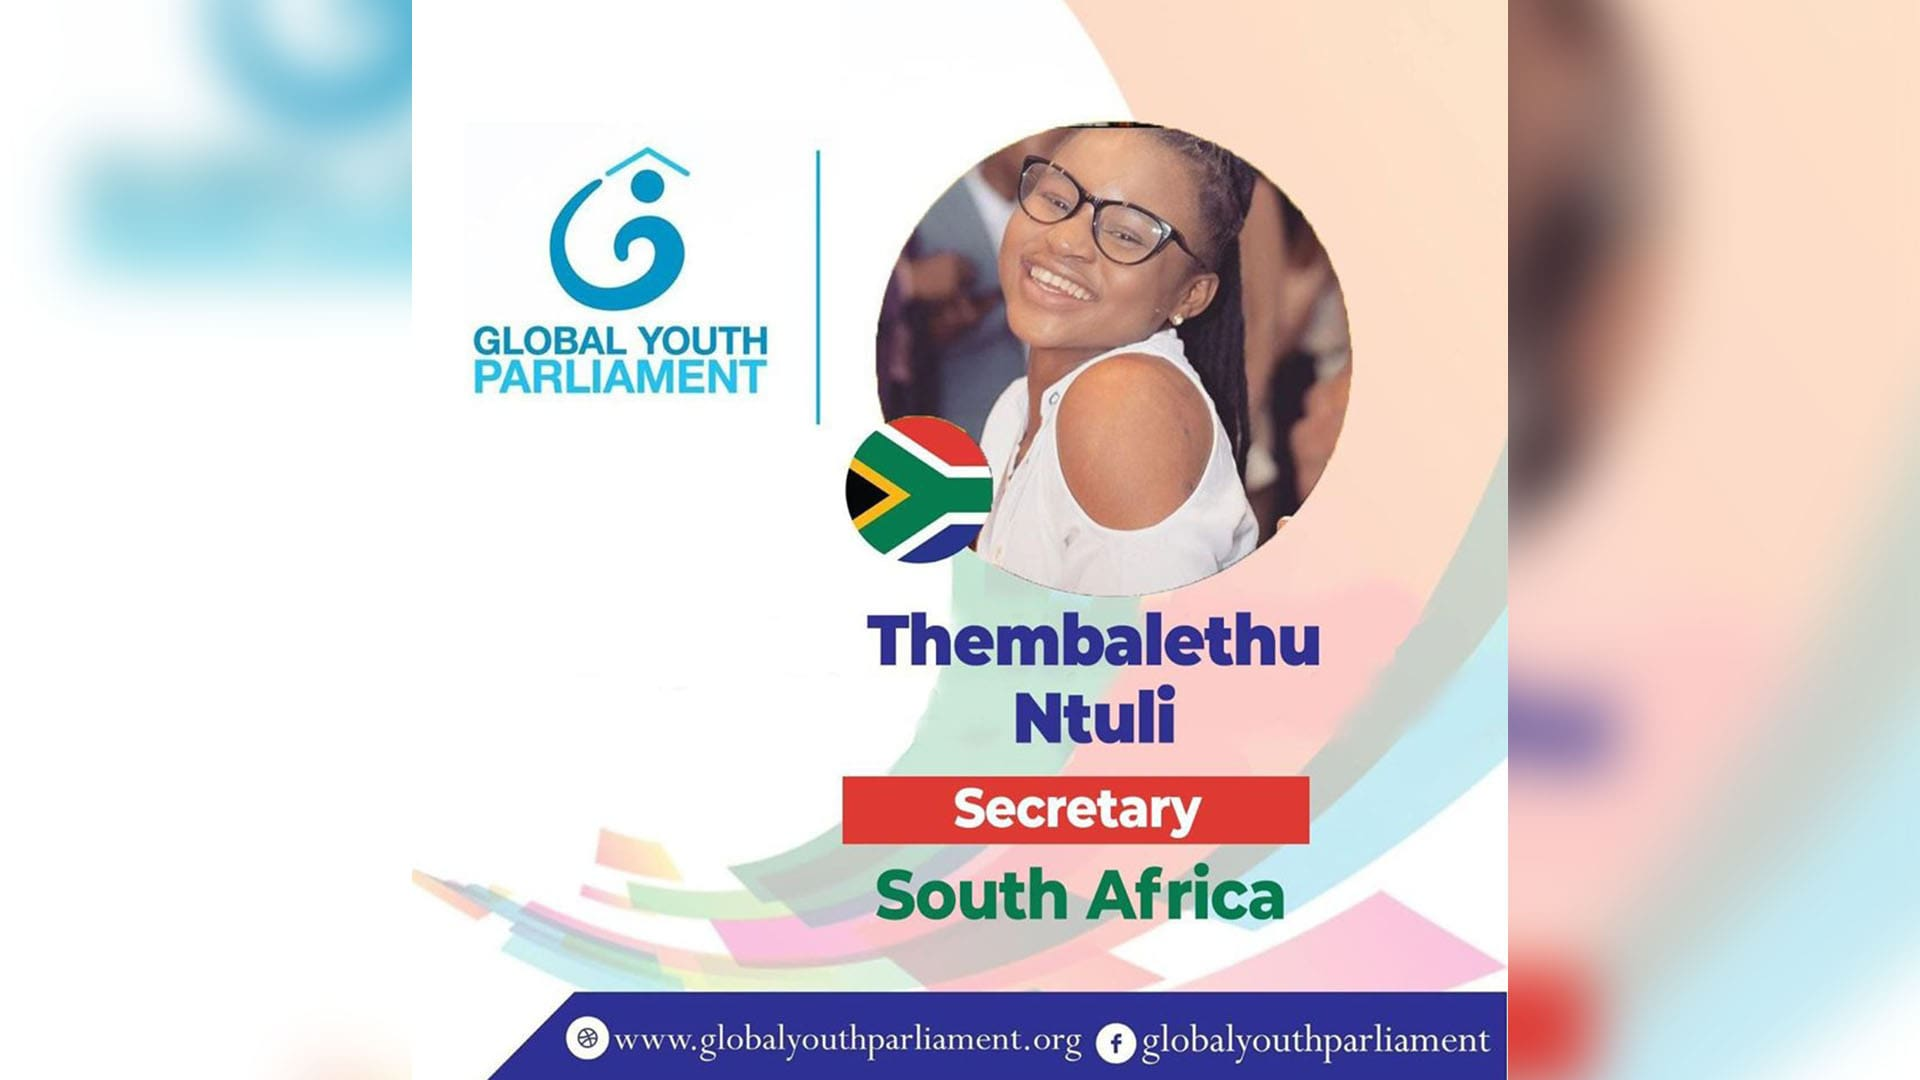 UKZN Student appointed to Global Youth Parliament